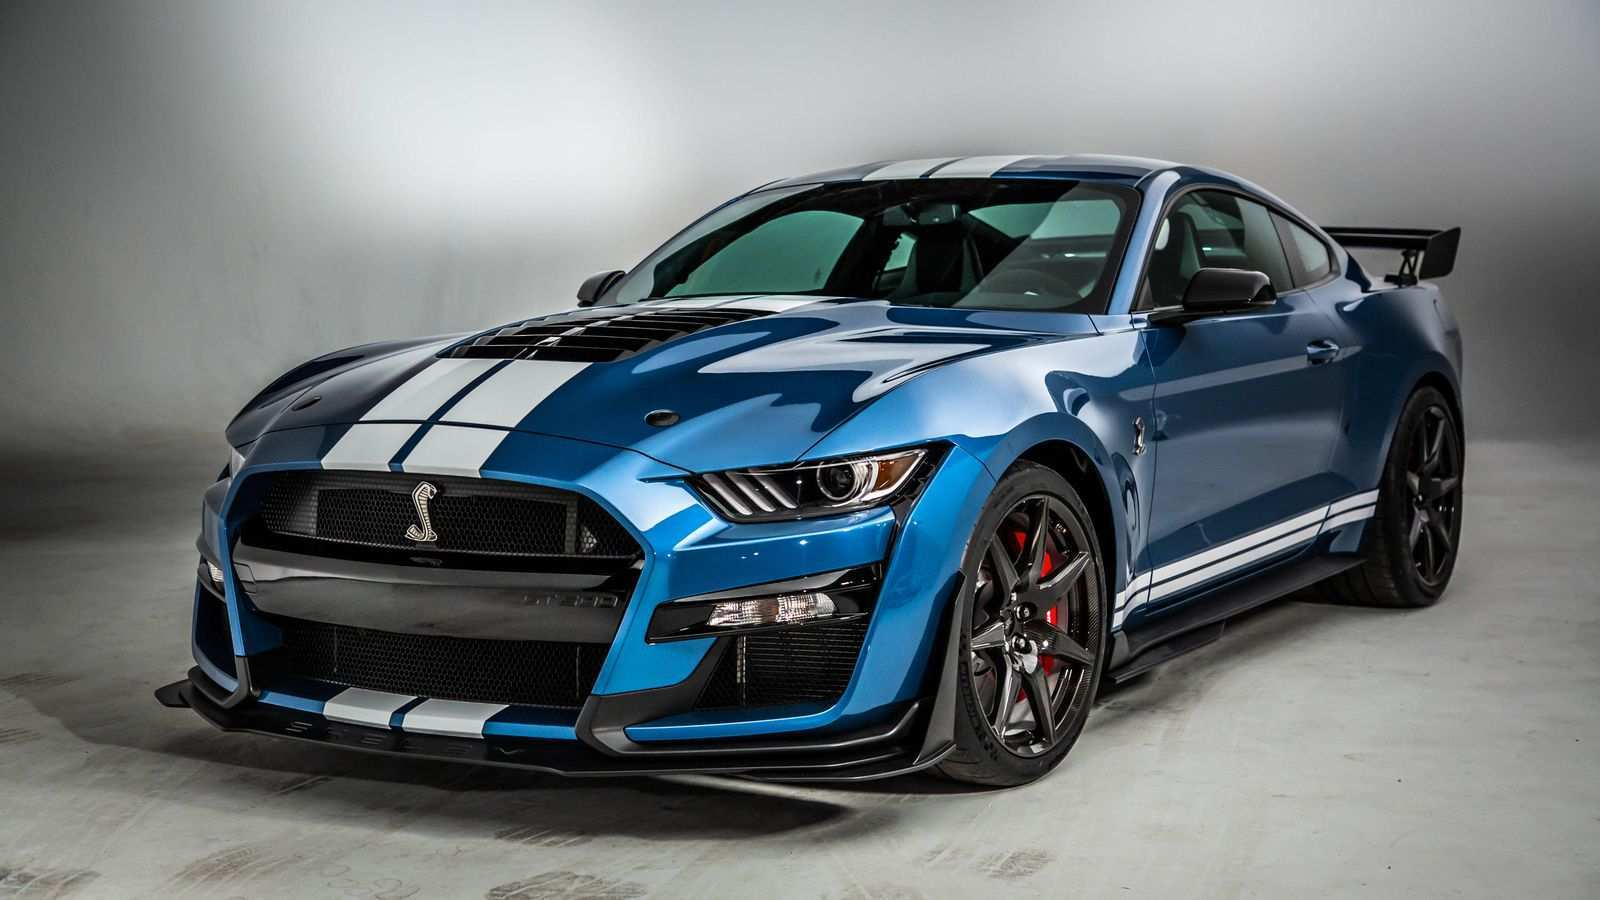 72 Gallery of 2020 Ford Mustang Images Specs with 2020 Ford Mustang Images